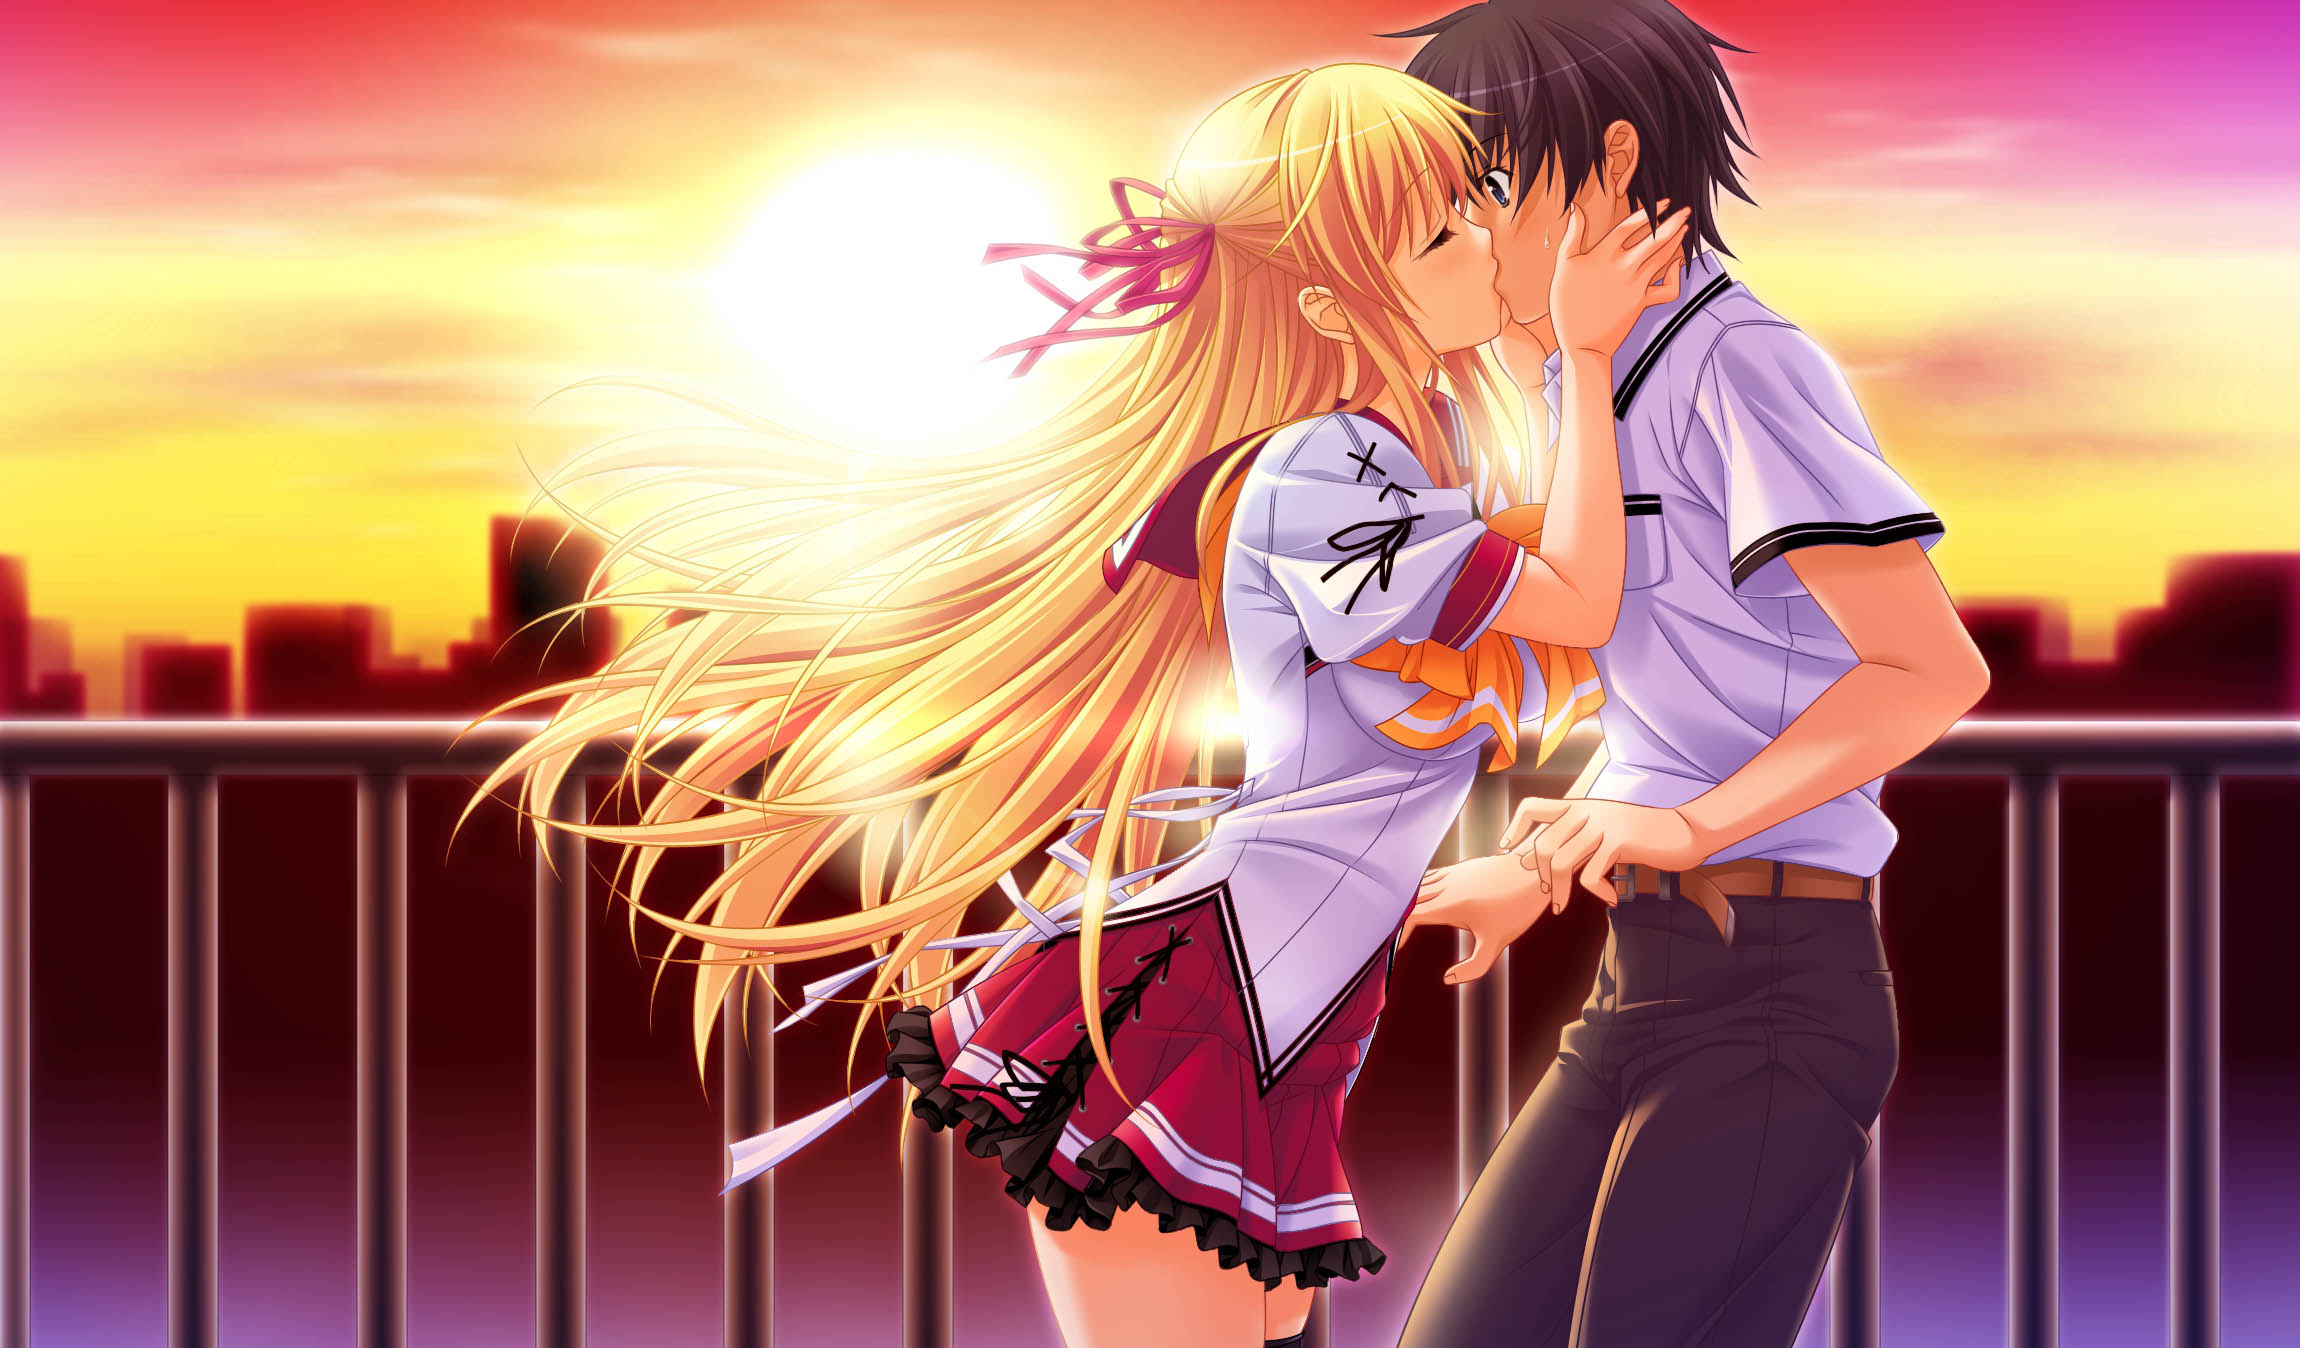 I Love You And Kiss Wallpaper : Anime Kiss Wallpapers - WallpaperSafari